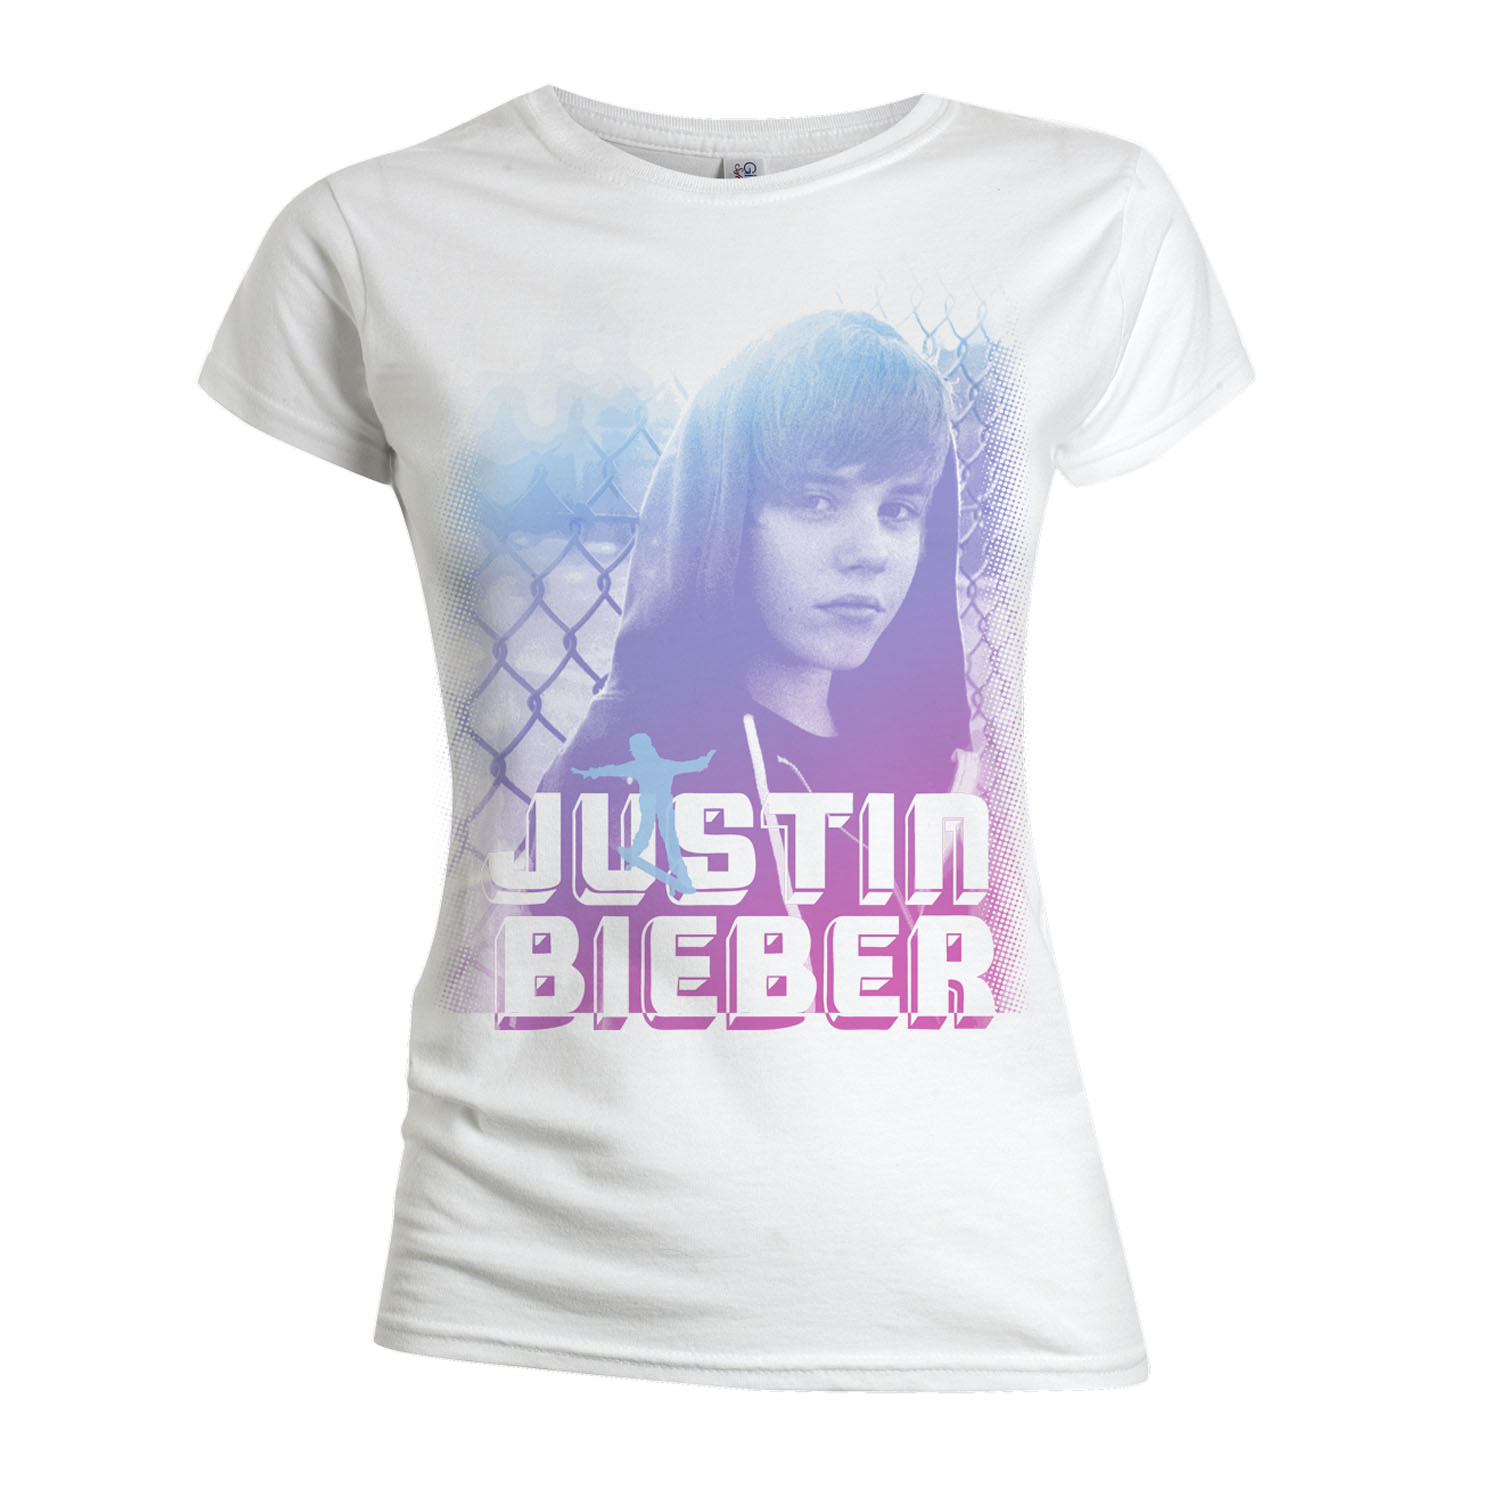 justin bieber official t shirts order now justin bieber malaysia. Black Bedroom Furniture Sets. Home Design Ideas